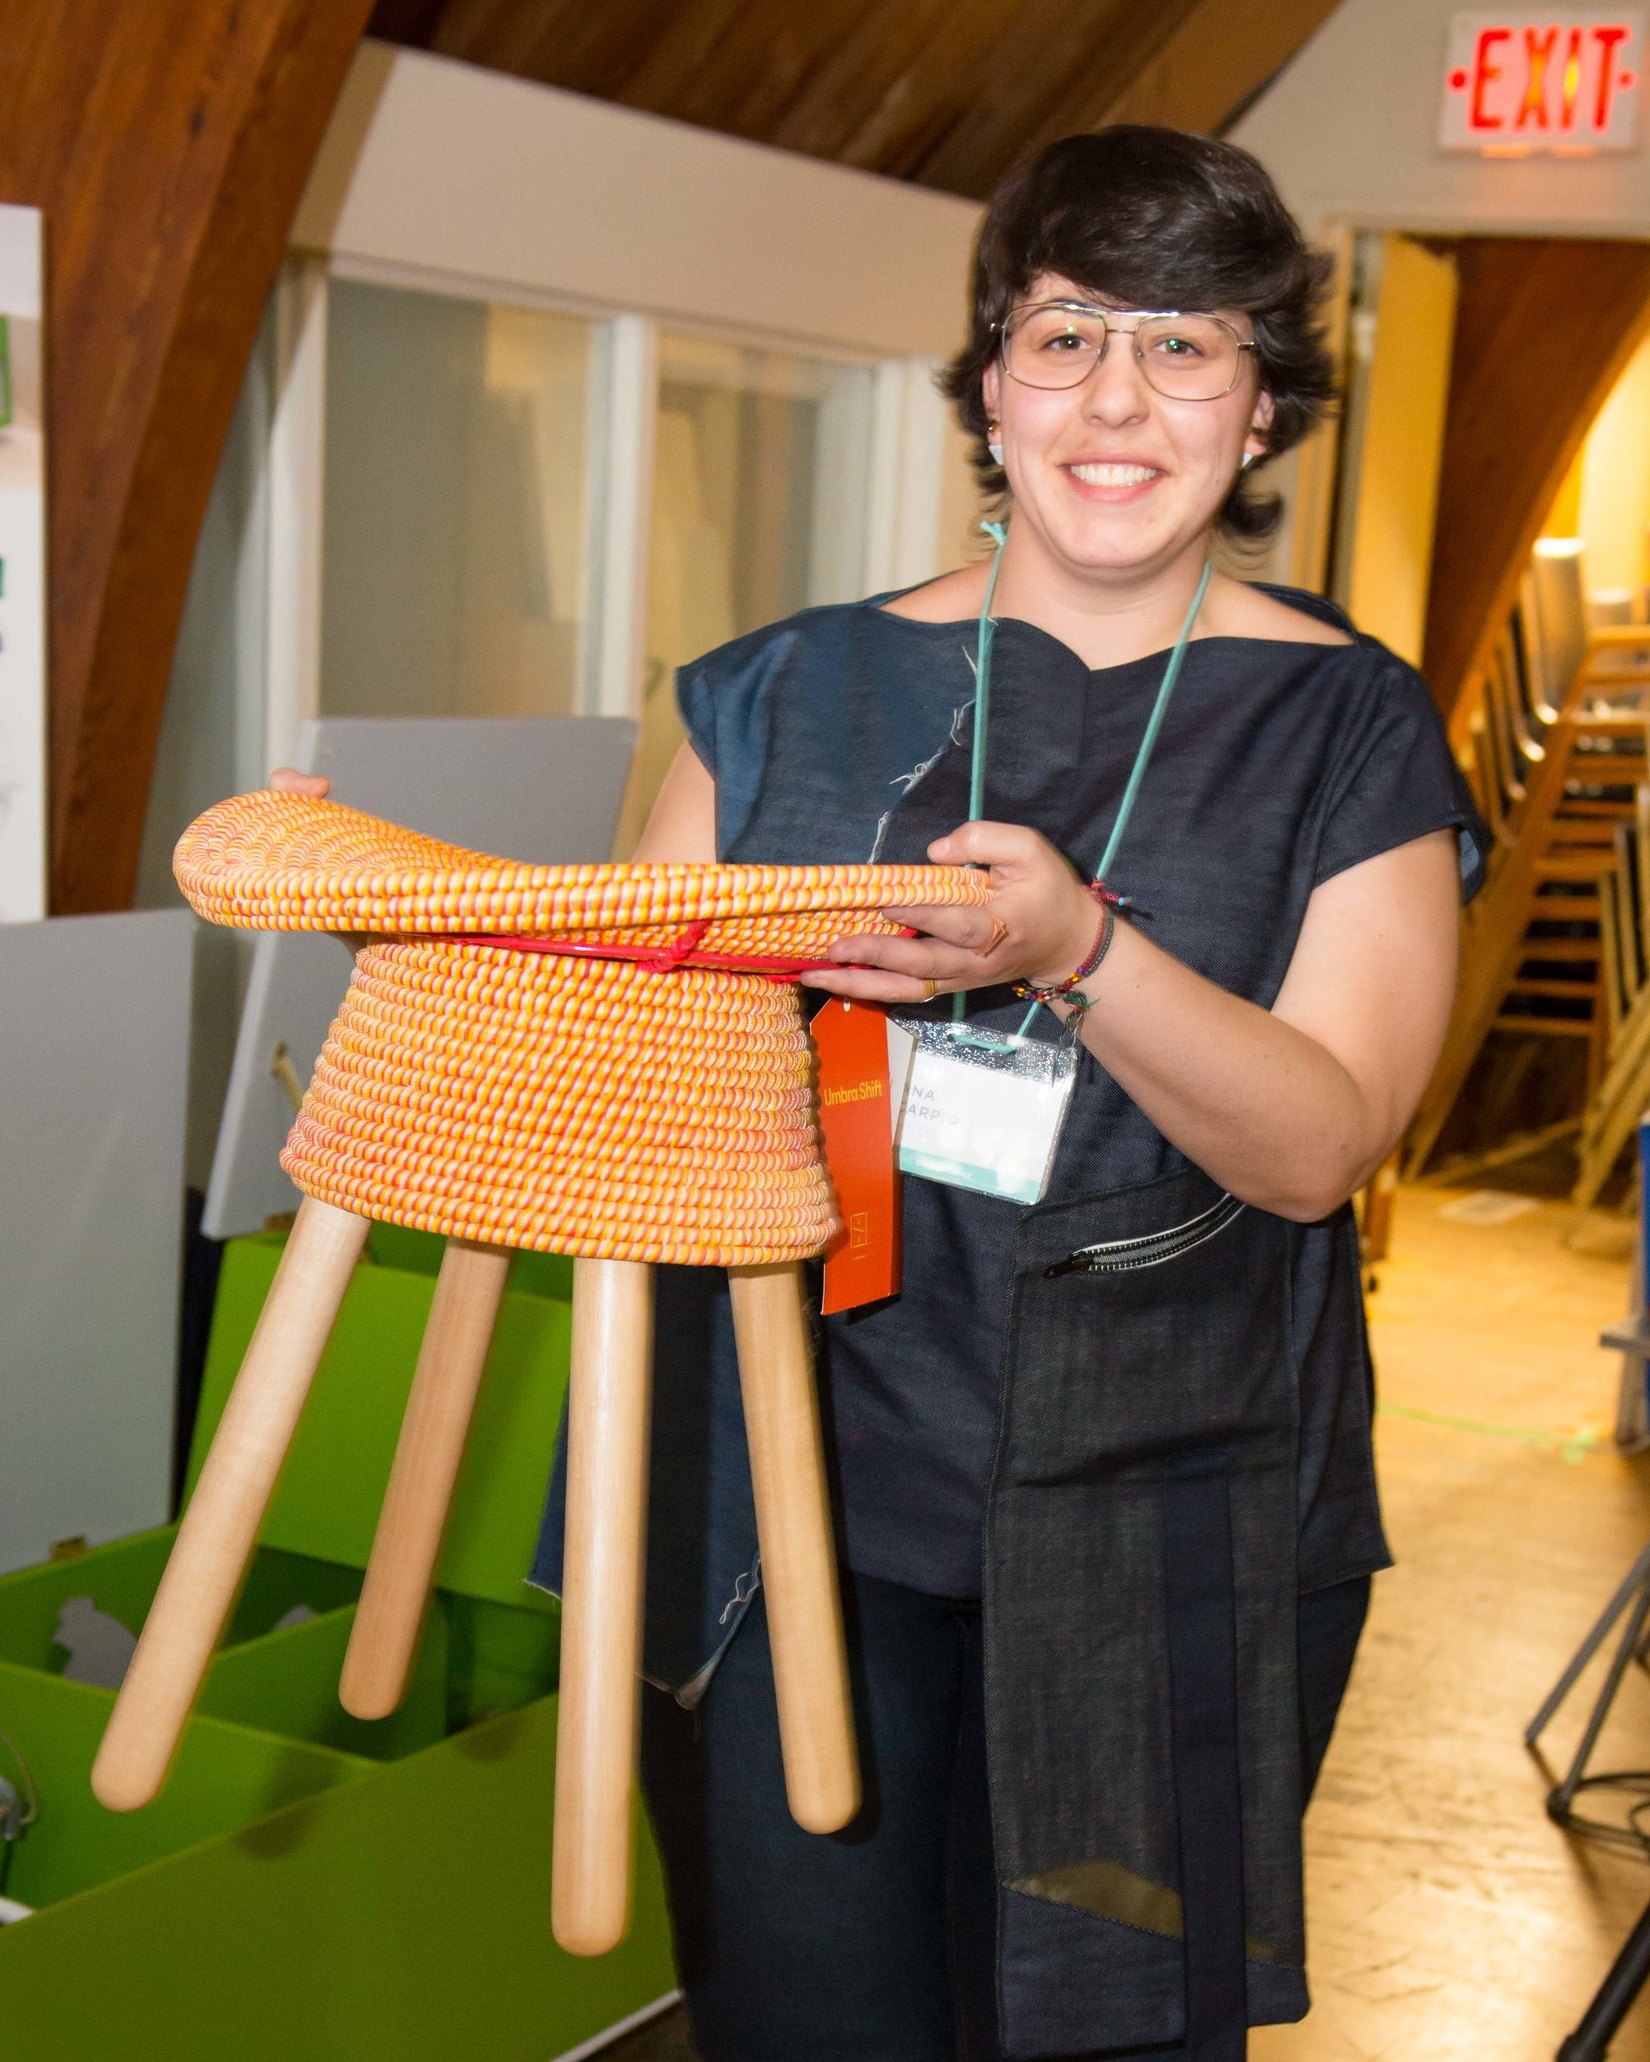 Ana Carpio with her Umbra Shift Coiled Stool.